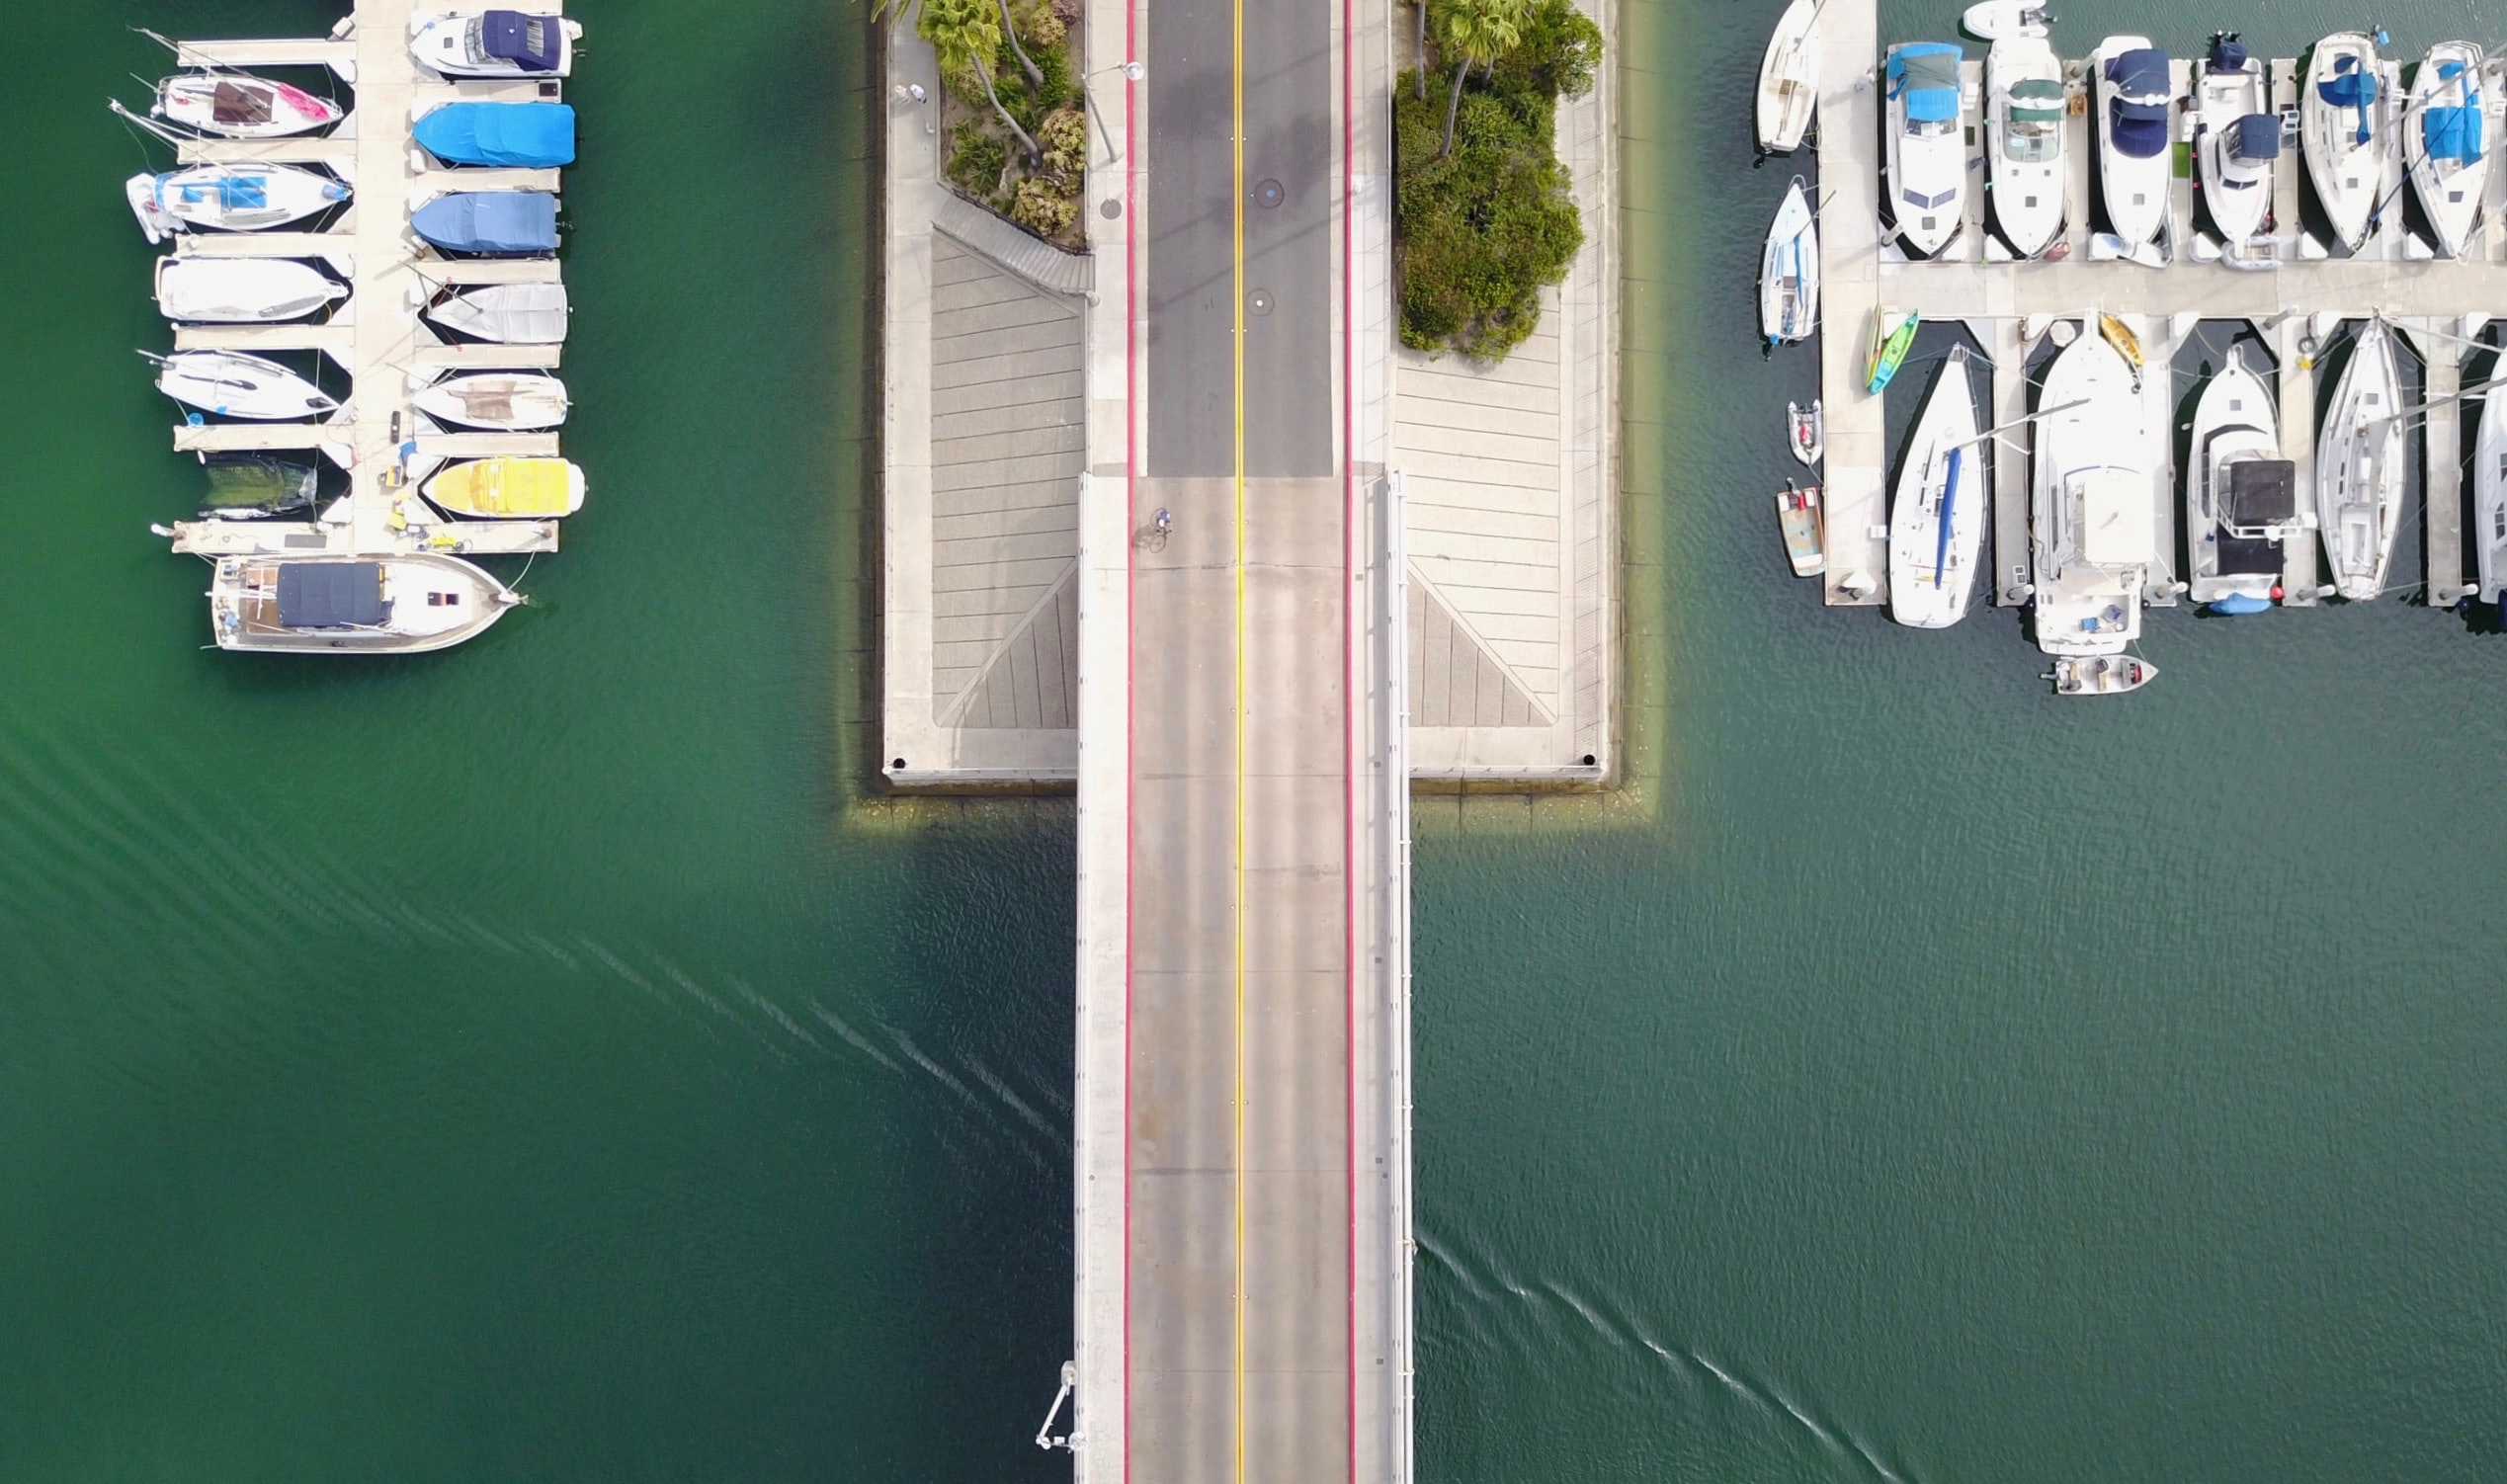 A road leading to the dock at a boatyard.